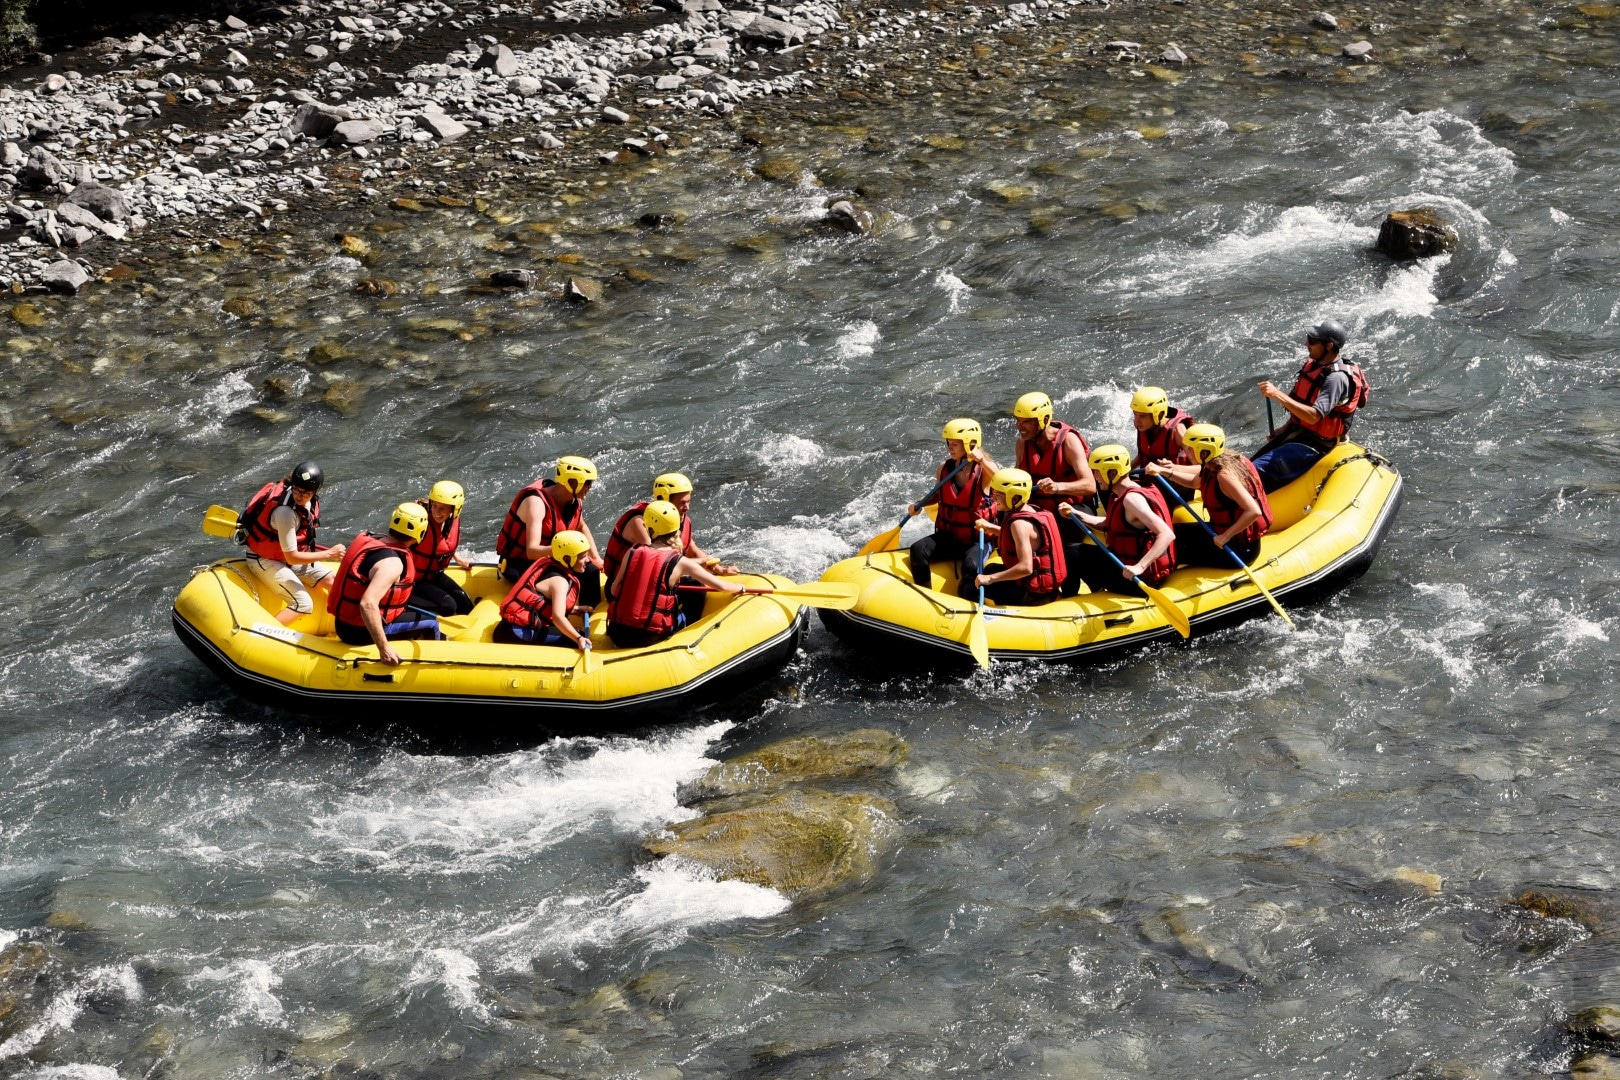 Rafting/hydrospeed